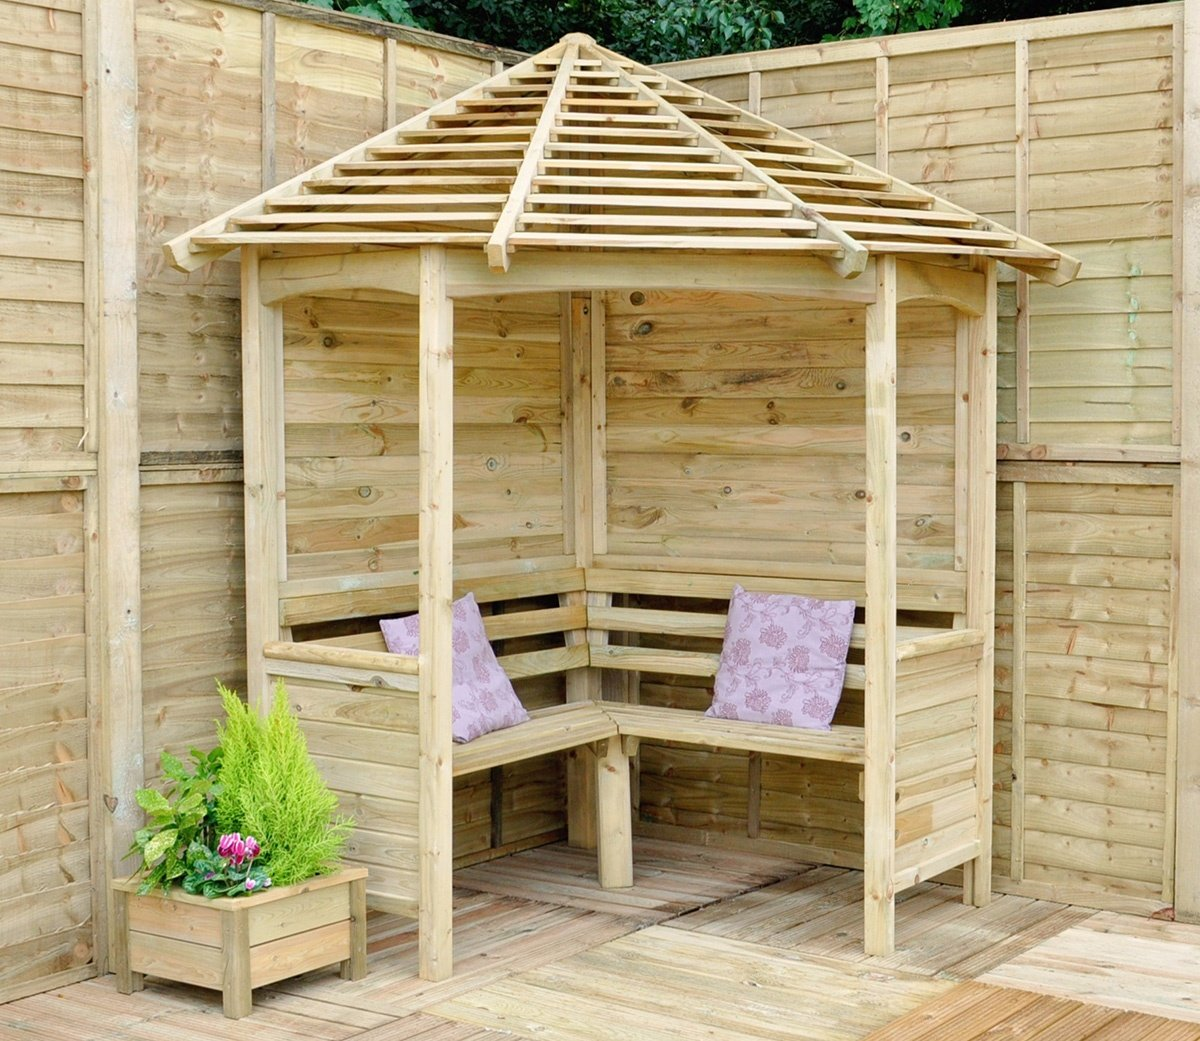 Venetian Style Roof Gazebo Arbor Design for a Corner Location